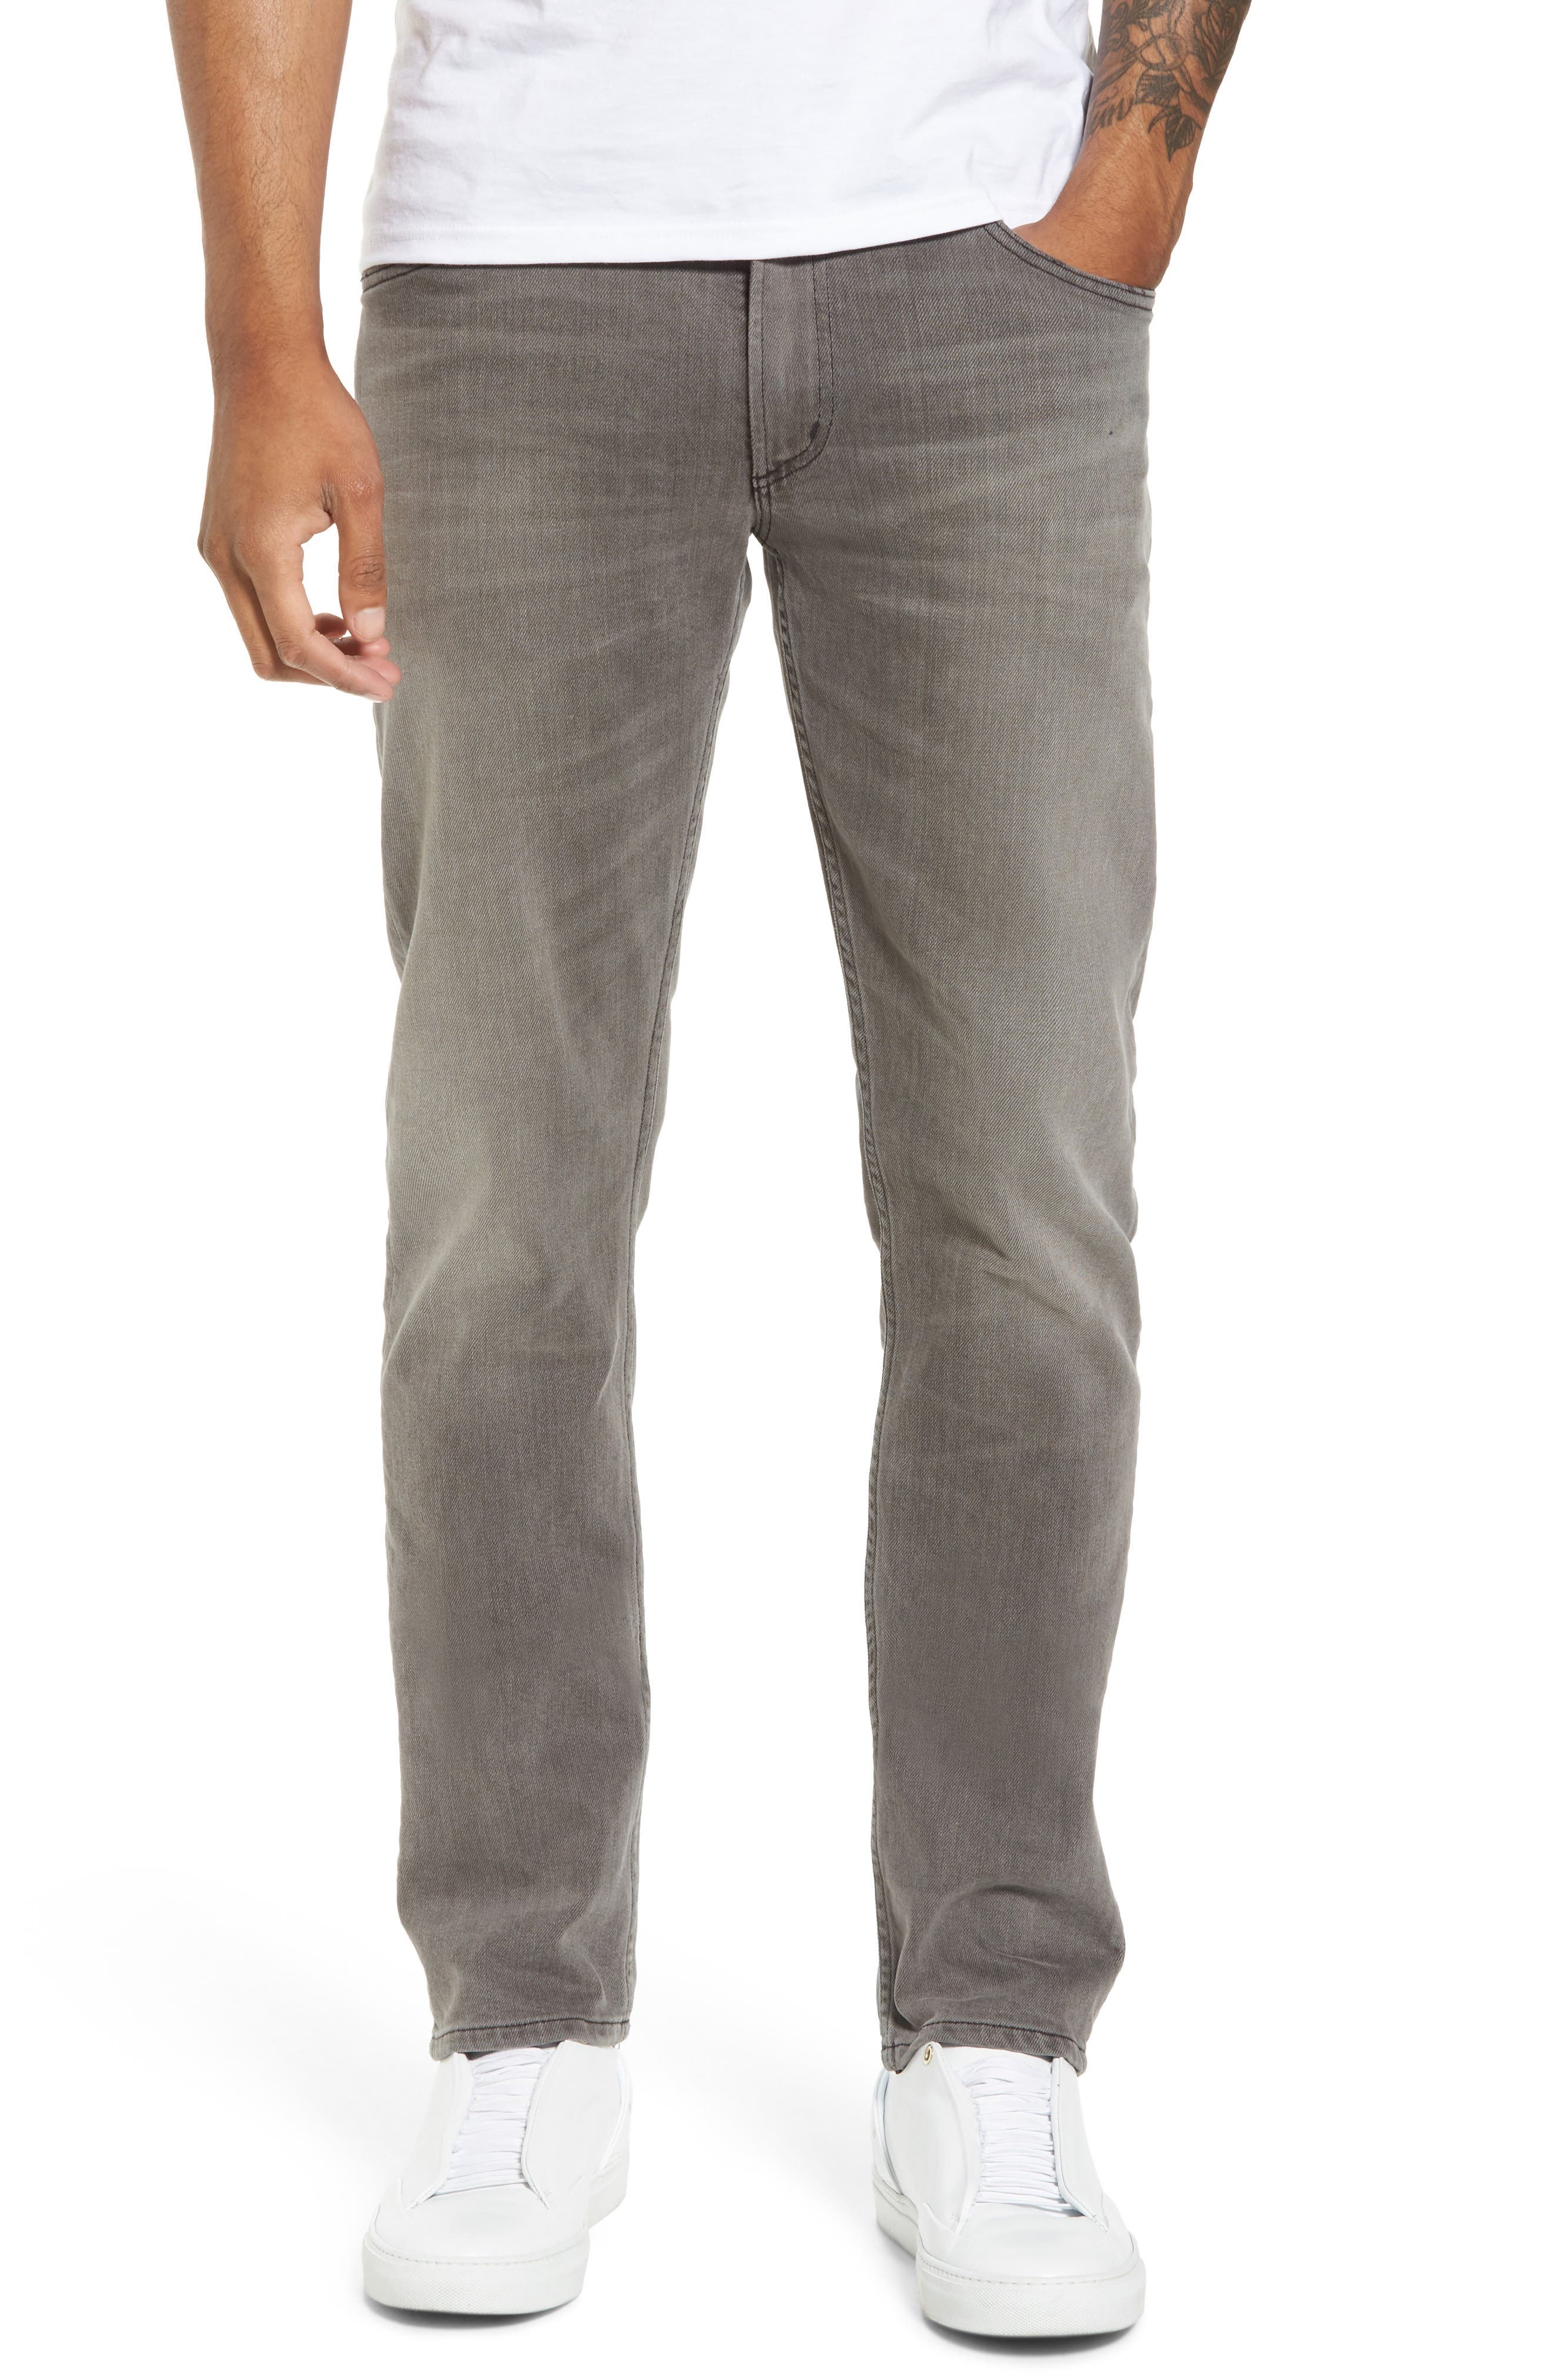 Bowery Slim Fit Jeans,                         Main,                         color, LEON